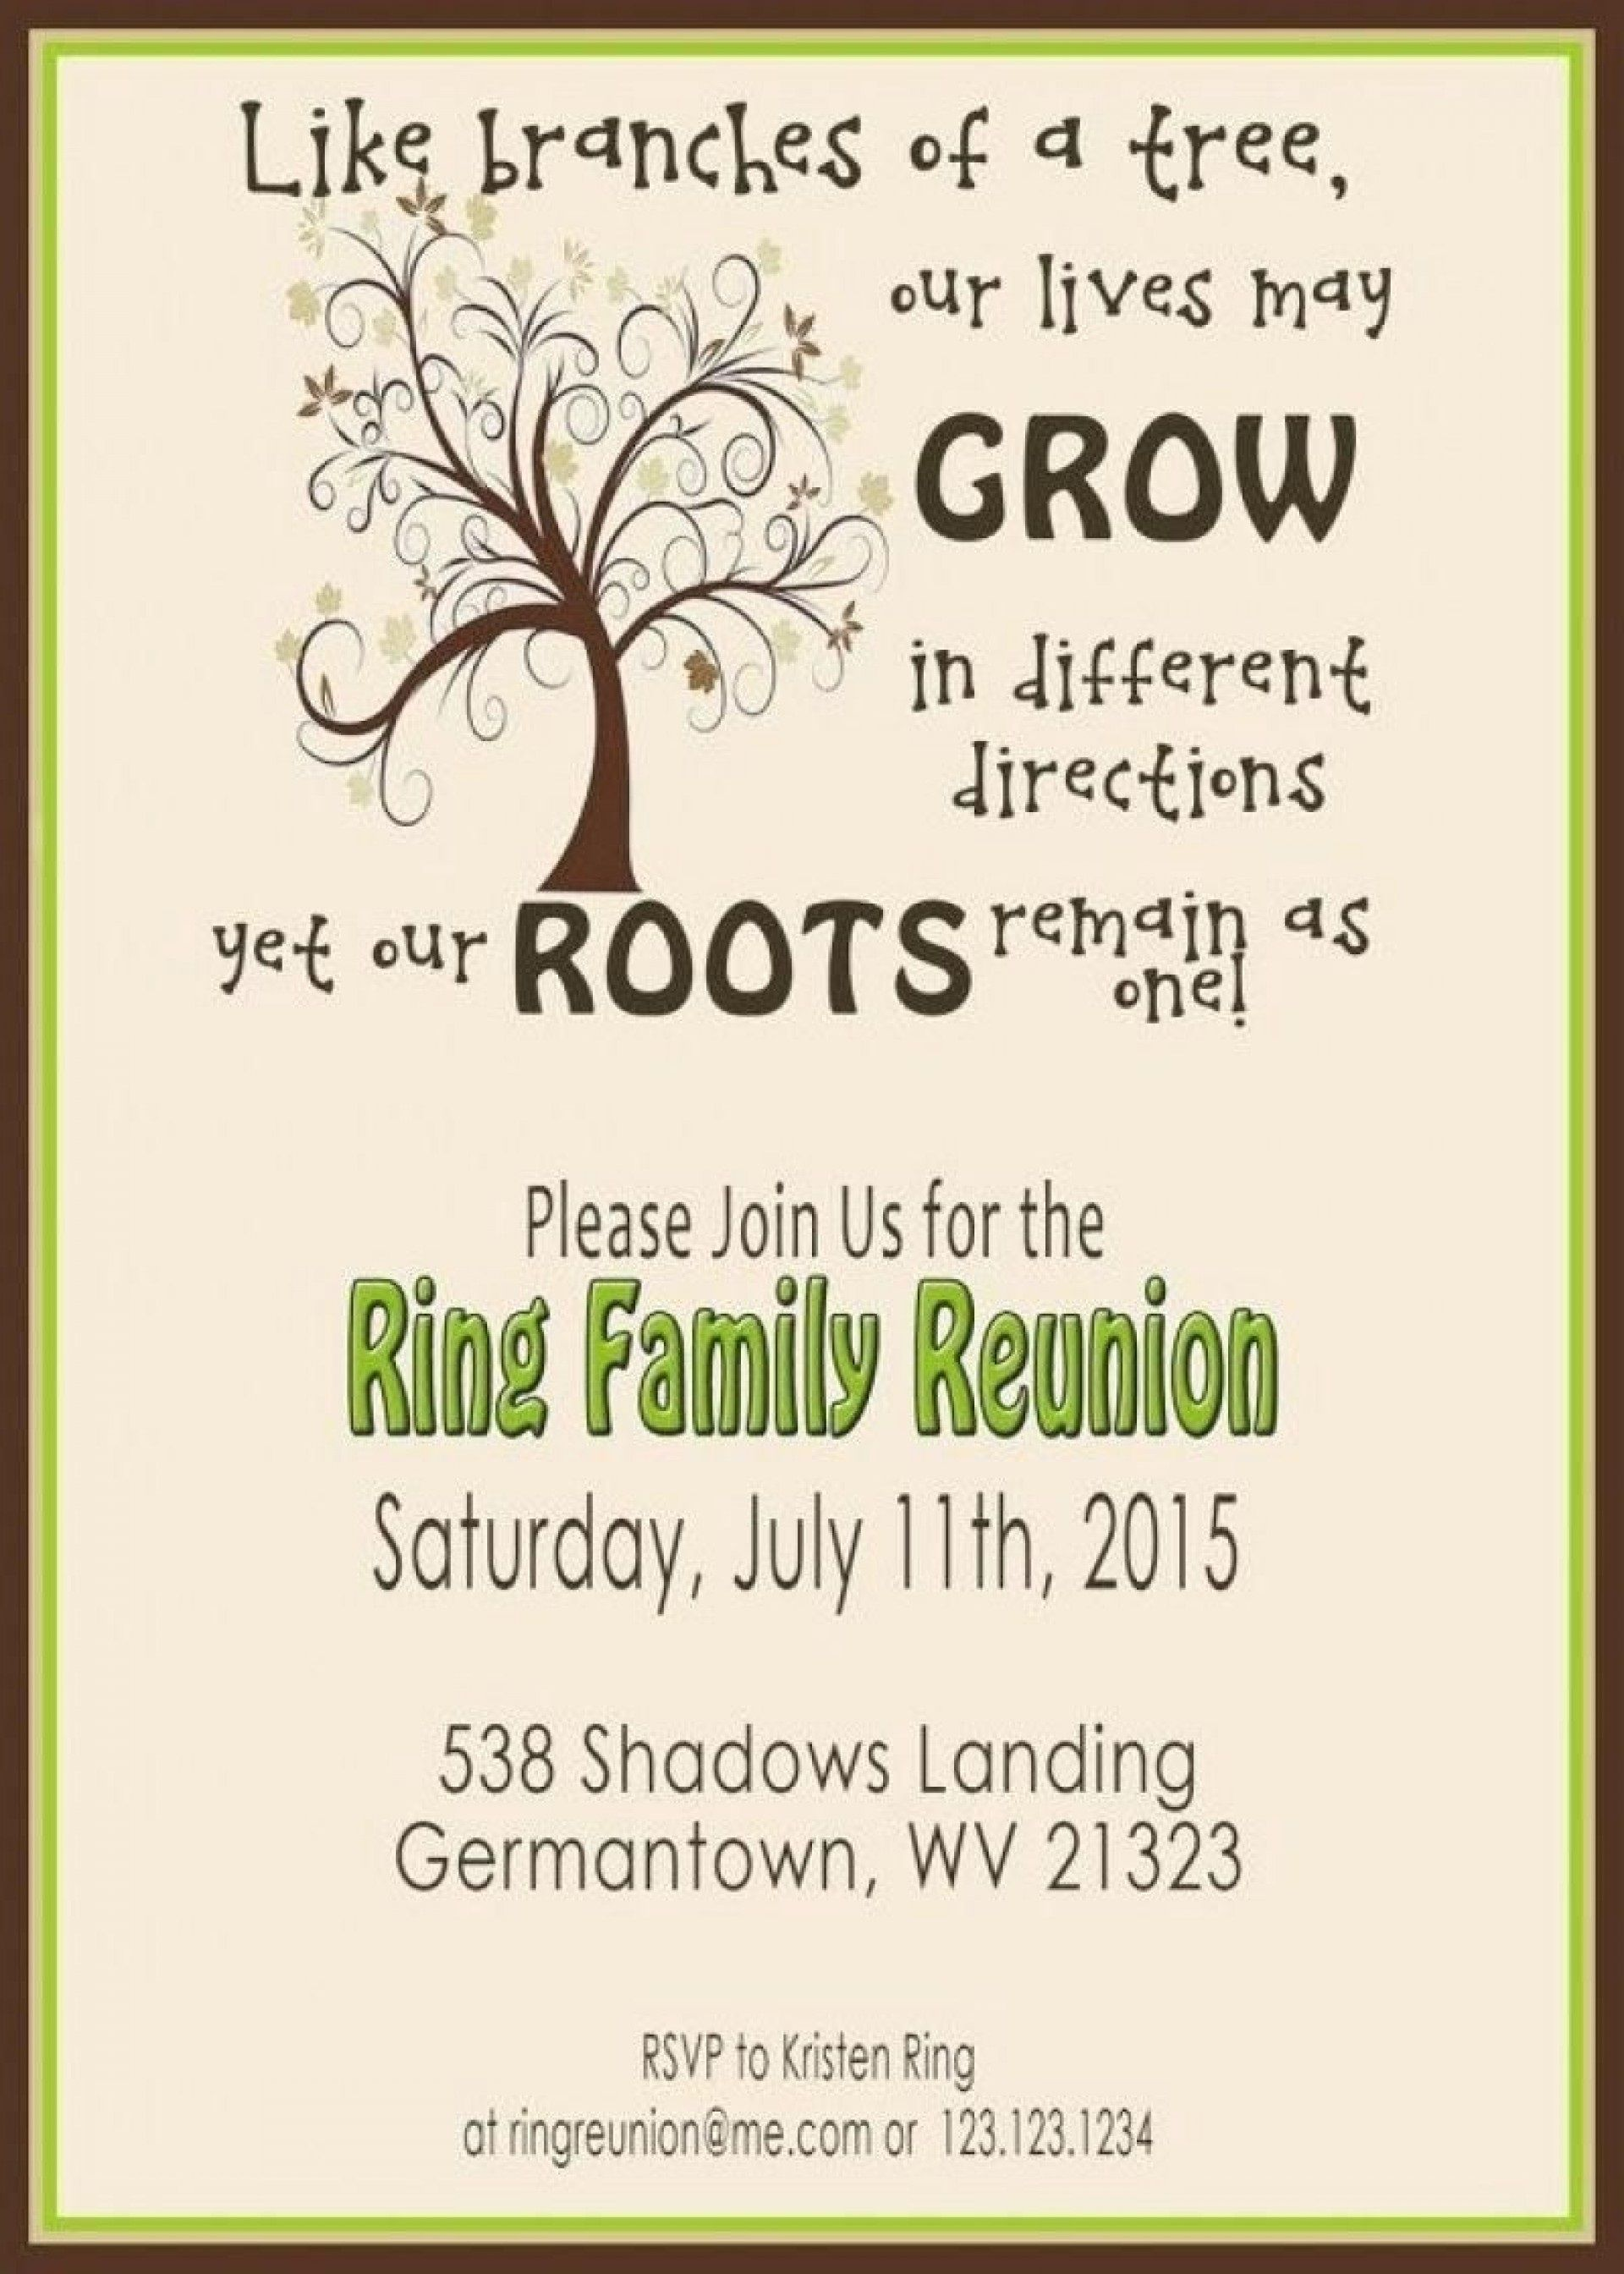 009 Awful Family Reunion Flyer Template Word Example Full